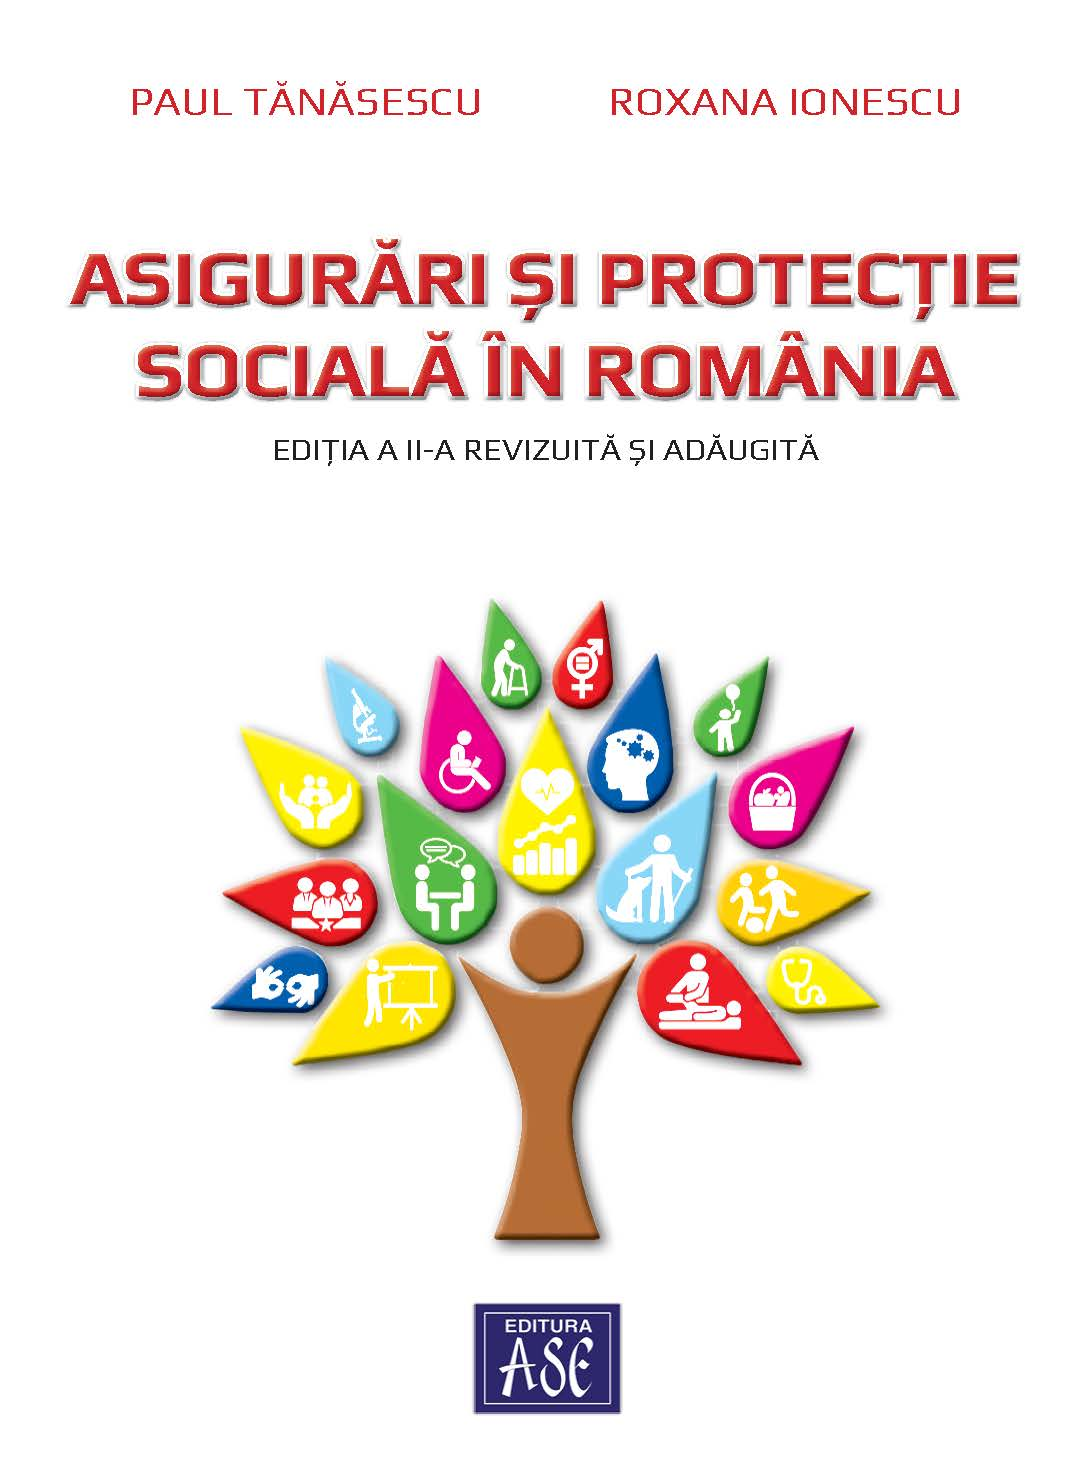 Insurance and Social Protection in Romania, 2nd edition revised and added